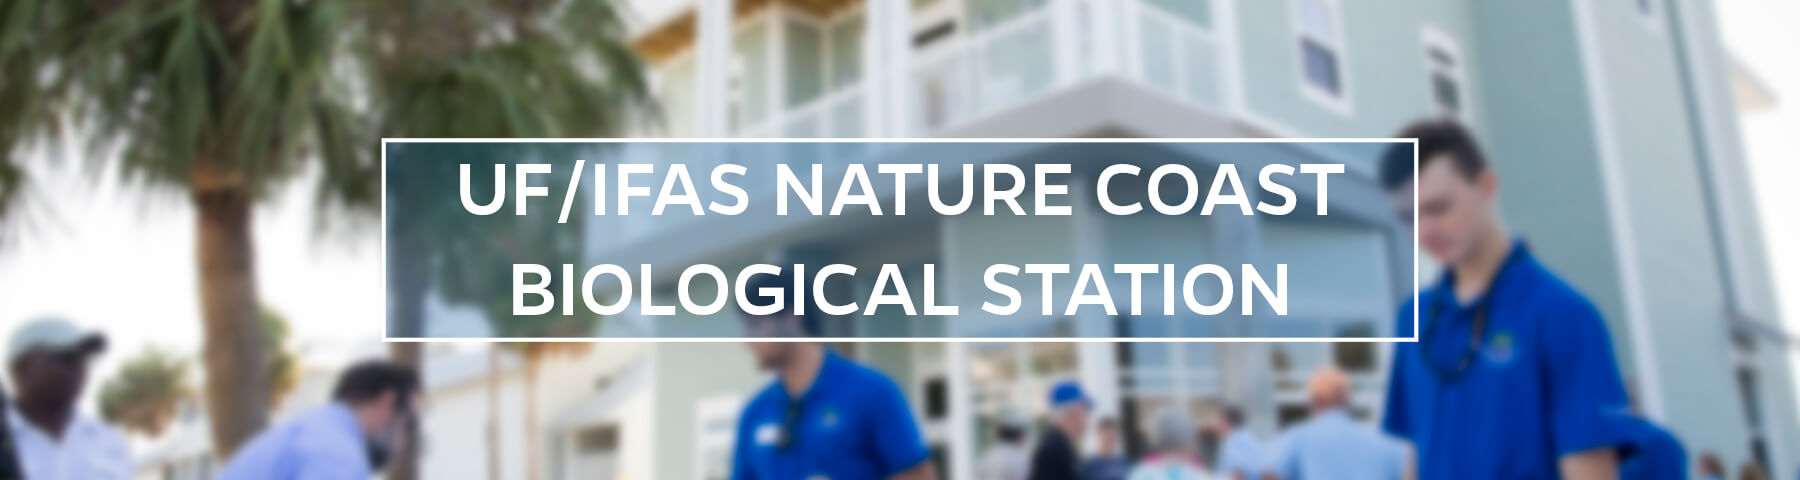 UF/IFAS Nature Coast Biological Station